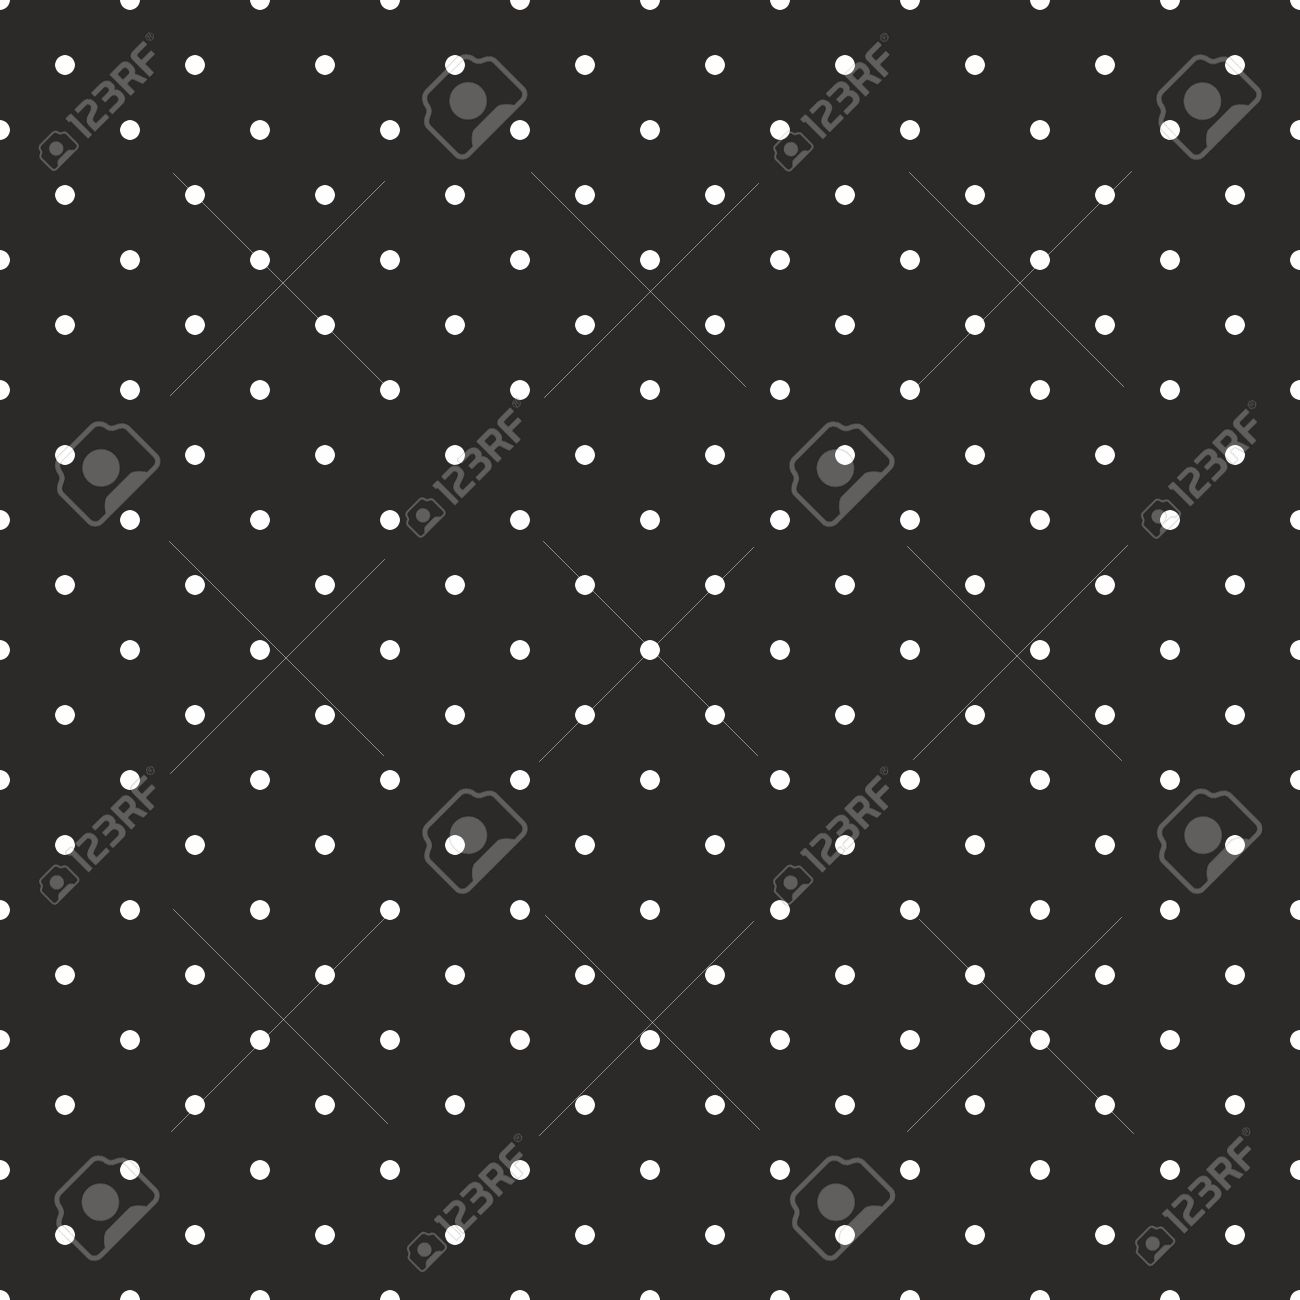 Seamless Vector Black Tile Pattern Or Background With Small White